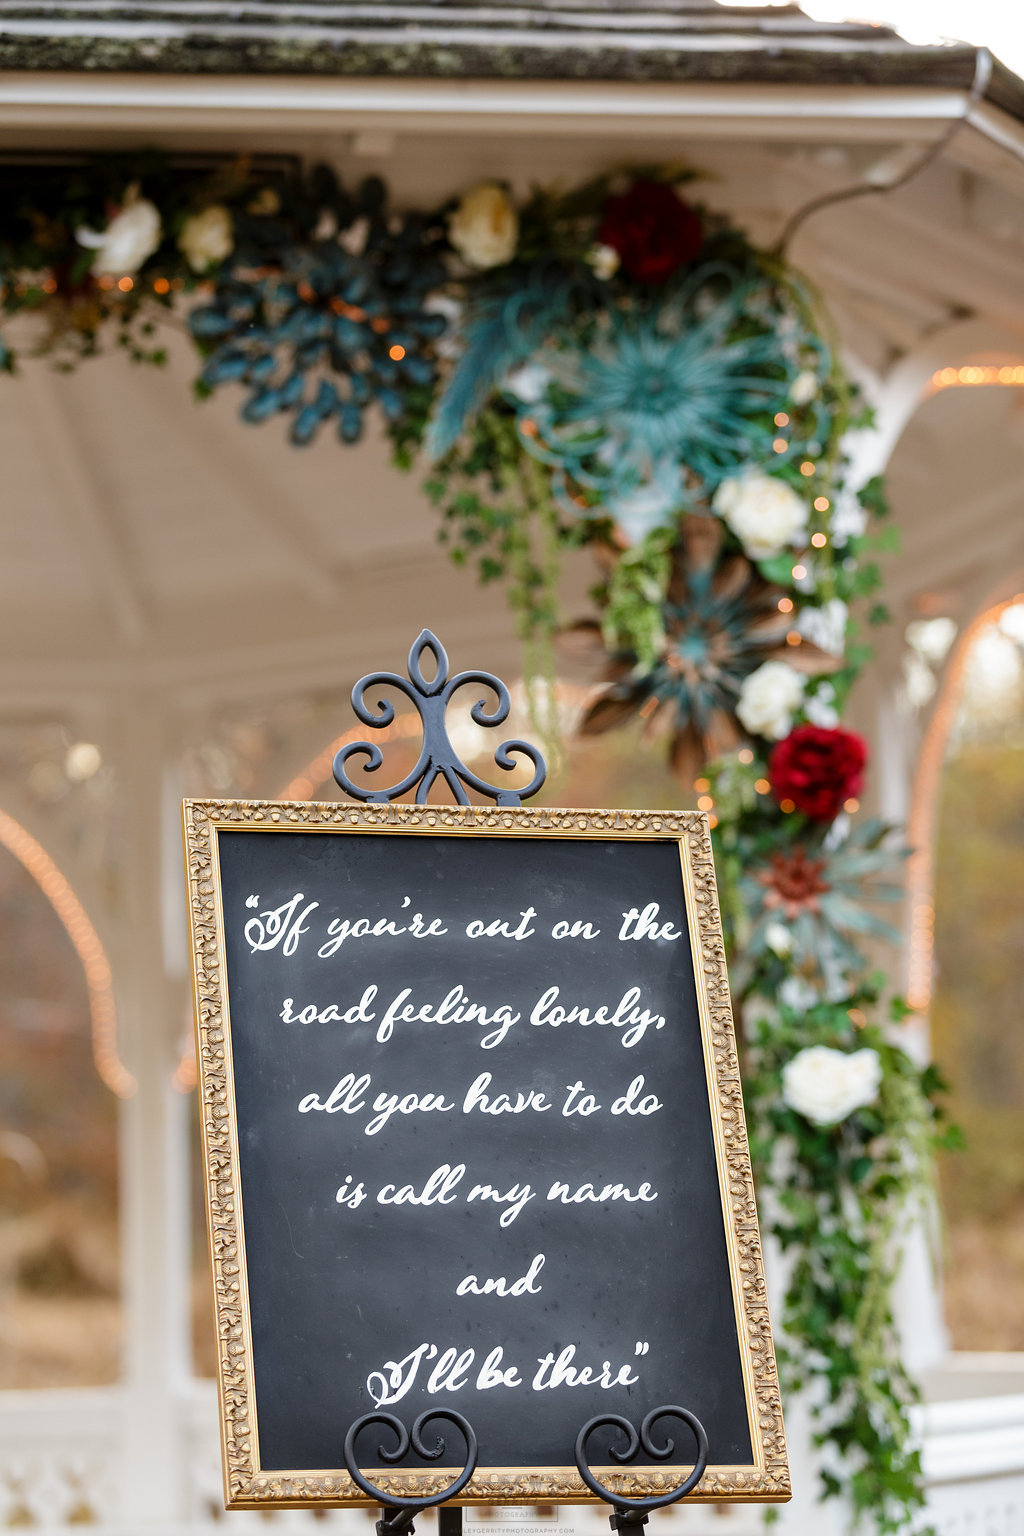 06 Wedding Signage Gilmore Girls Wedding Inspiration Stars Hollow Wedding.jpg